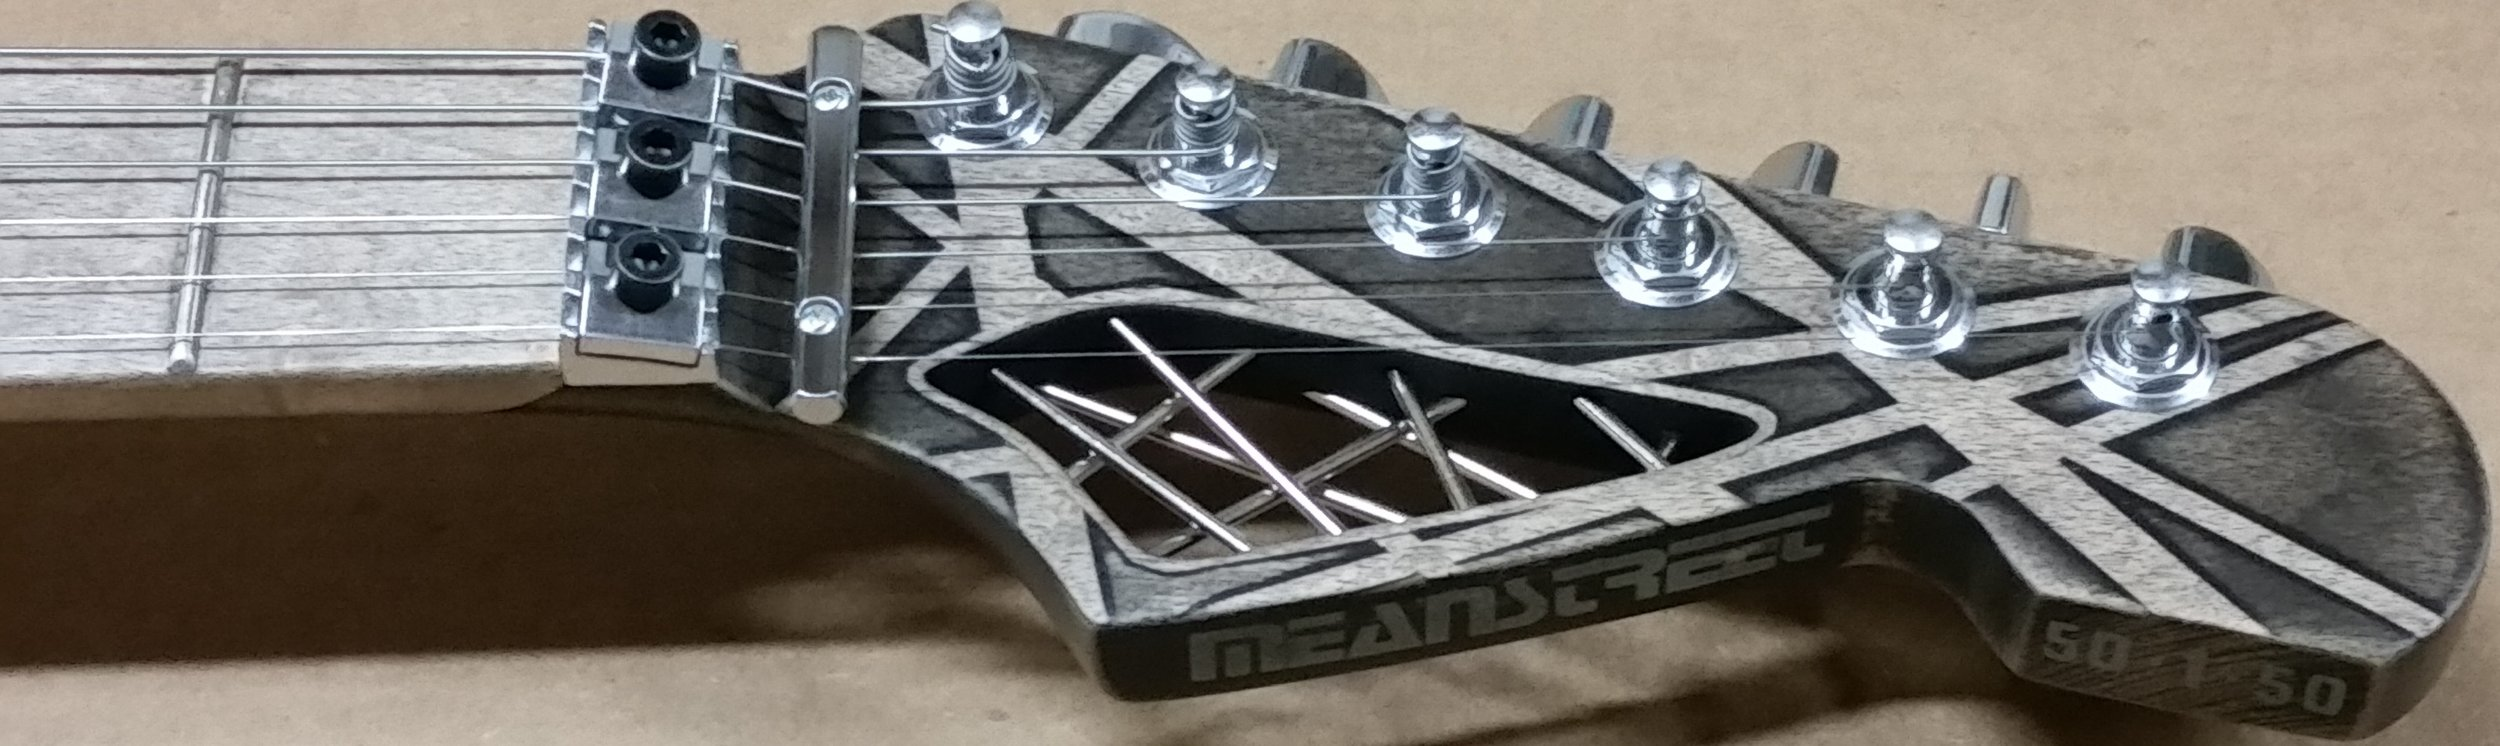 Mean Street Guitars Industrial 50 1 50 Pipeline black B04 Darrel D pic 9.jpg